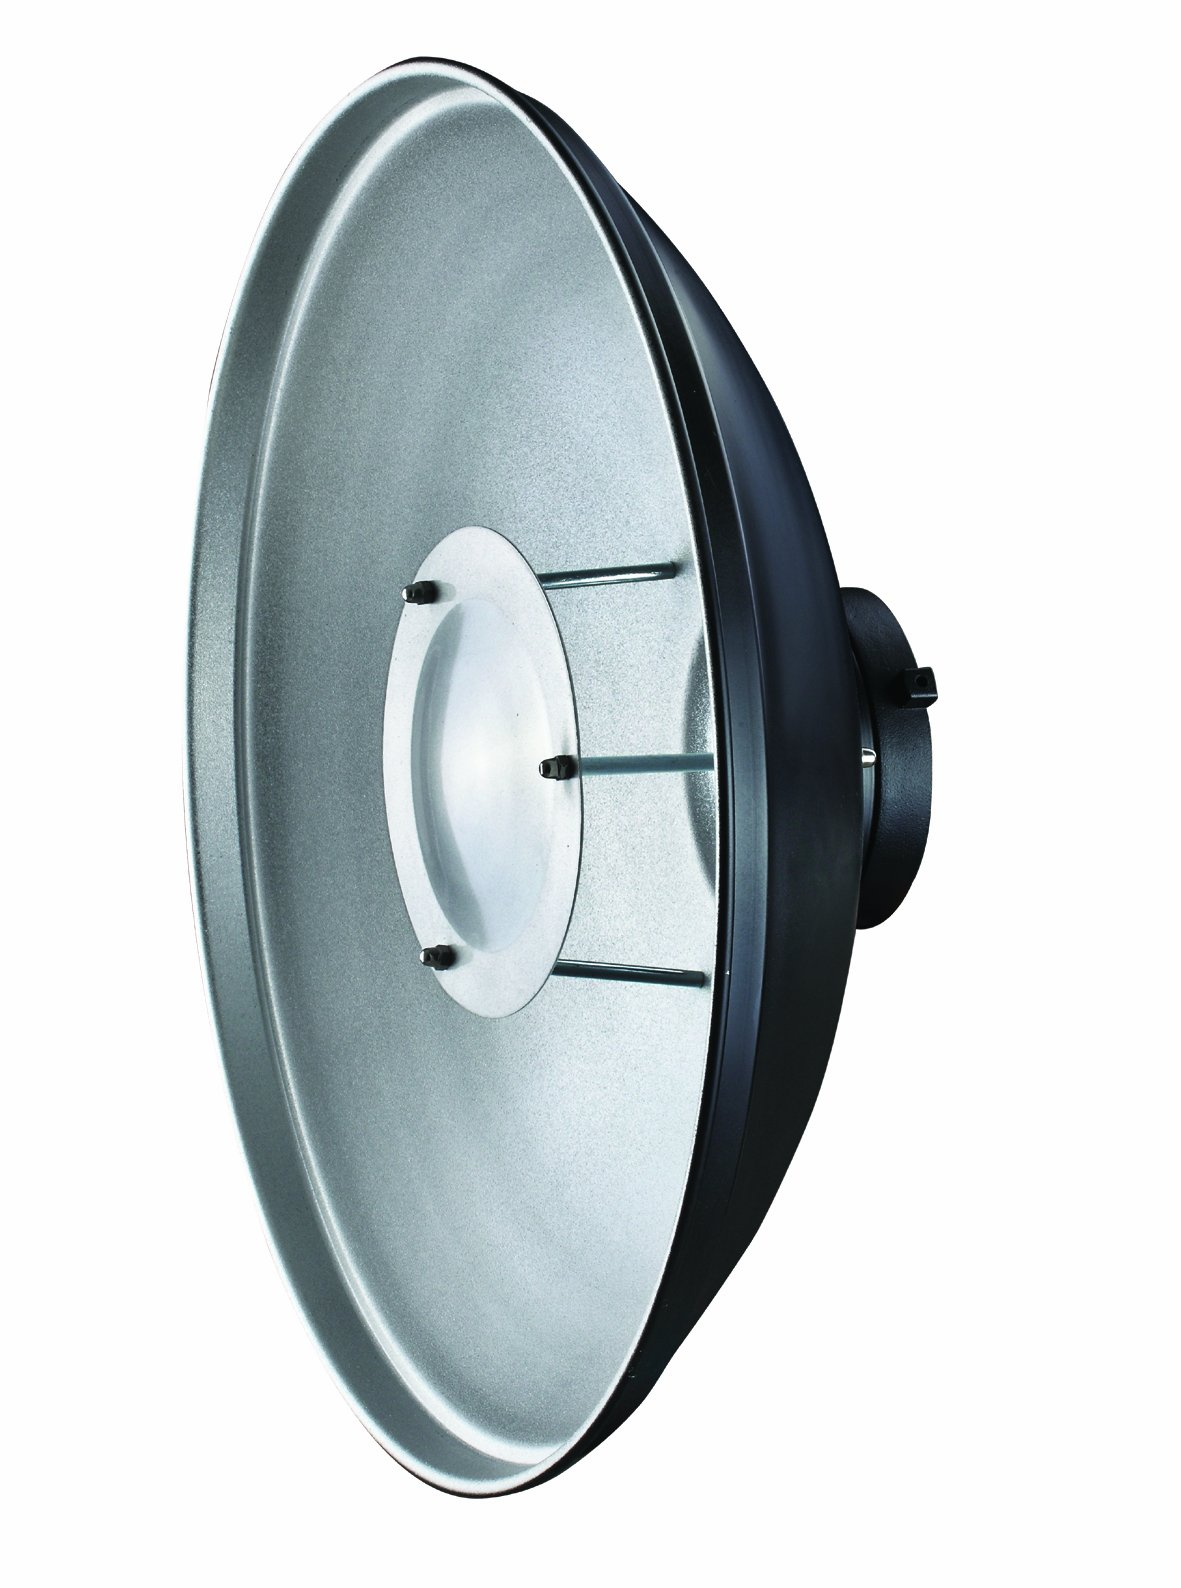 Metz BE-40 Beauty Dish by Metz